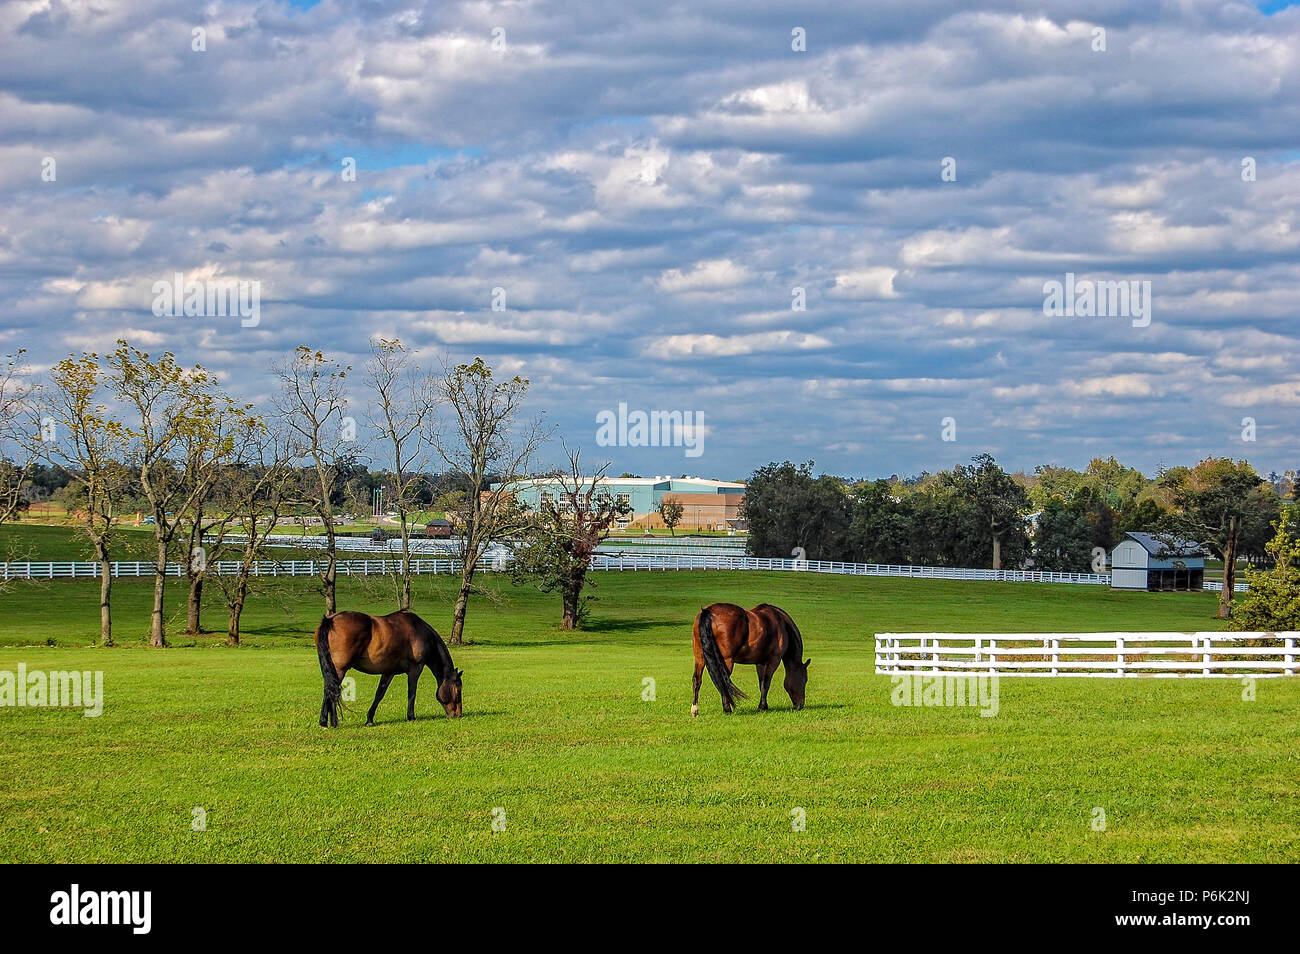 Horses at the Kentucky Horse Park - Stock Image